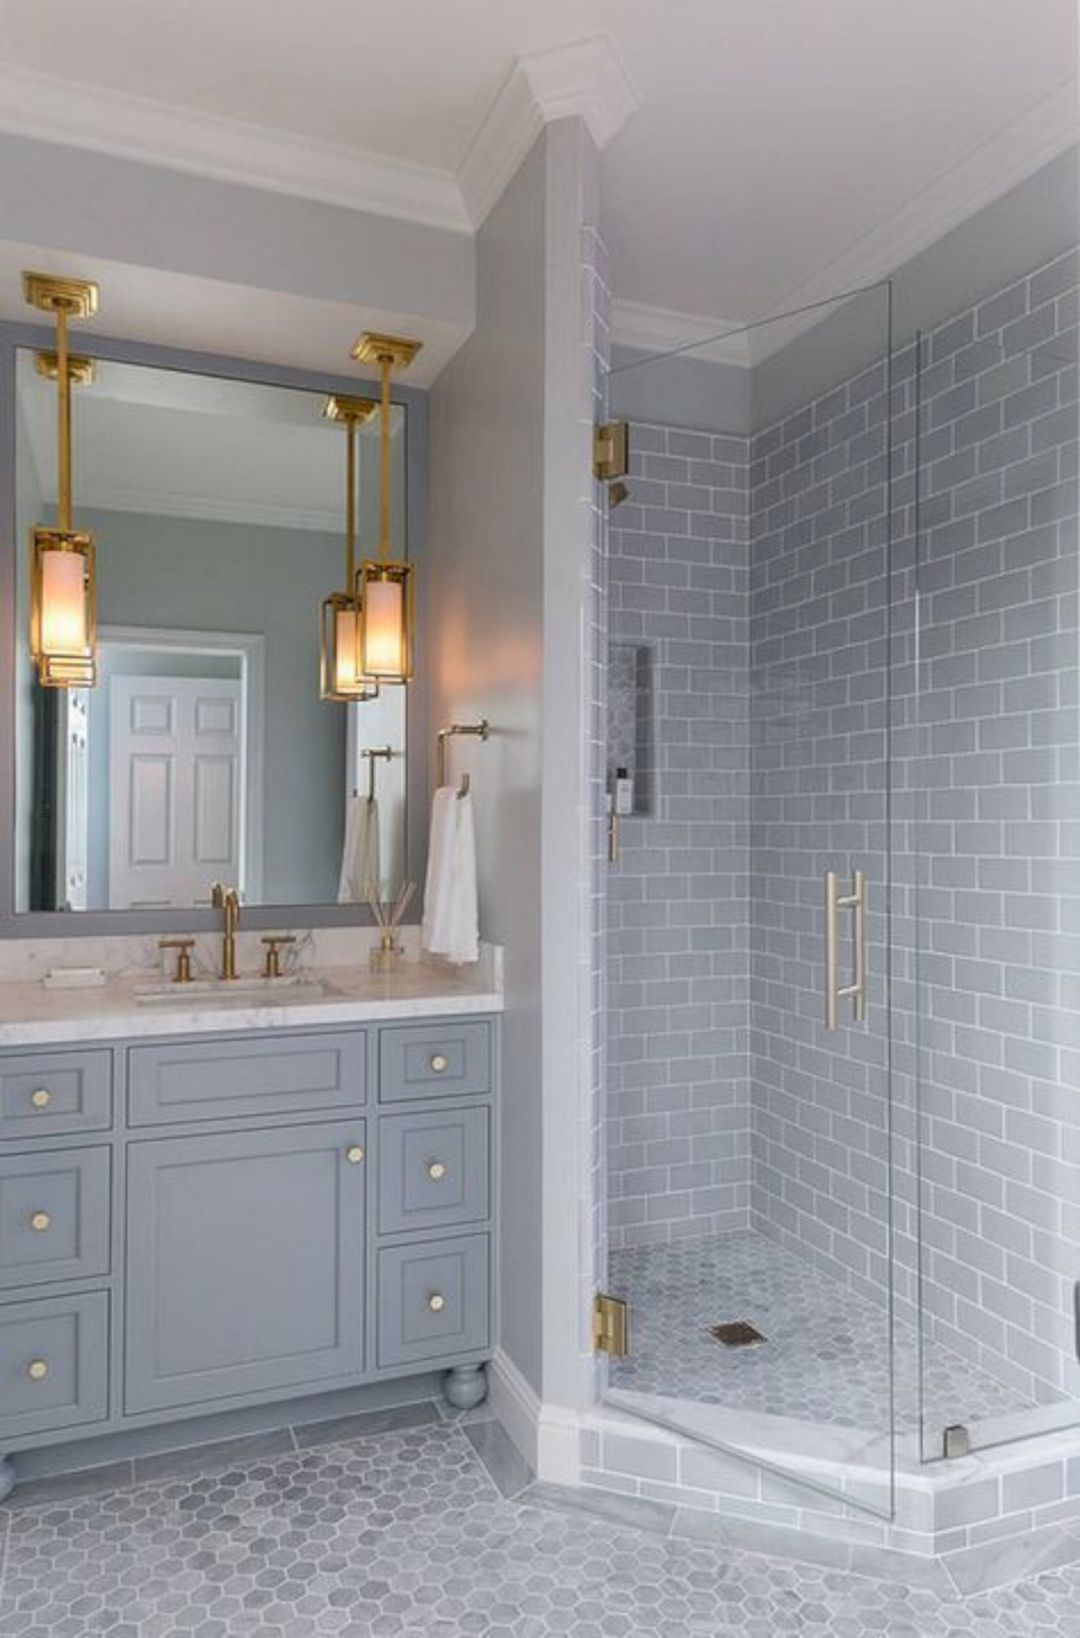 15 Great Renovation Ideas to Makeover Your Shower | Pinterest